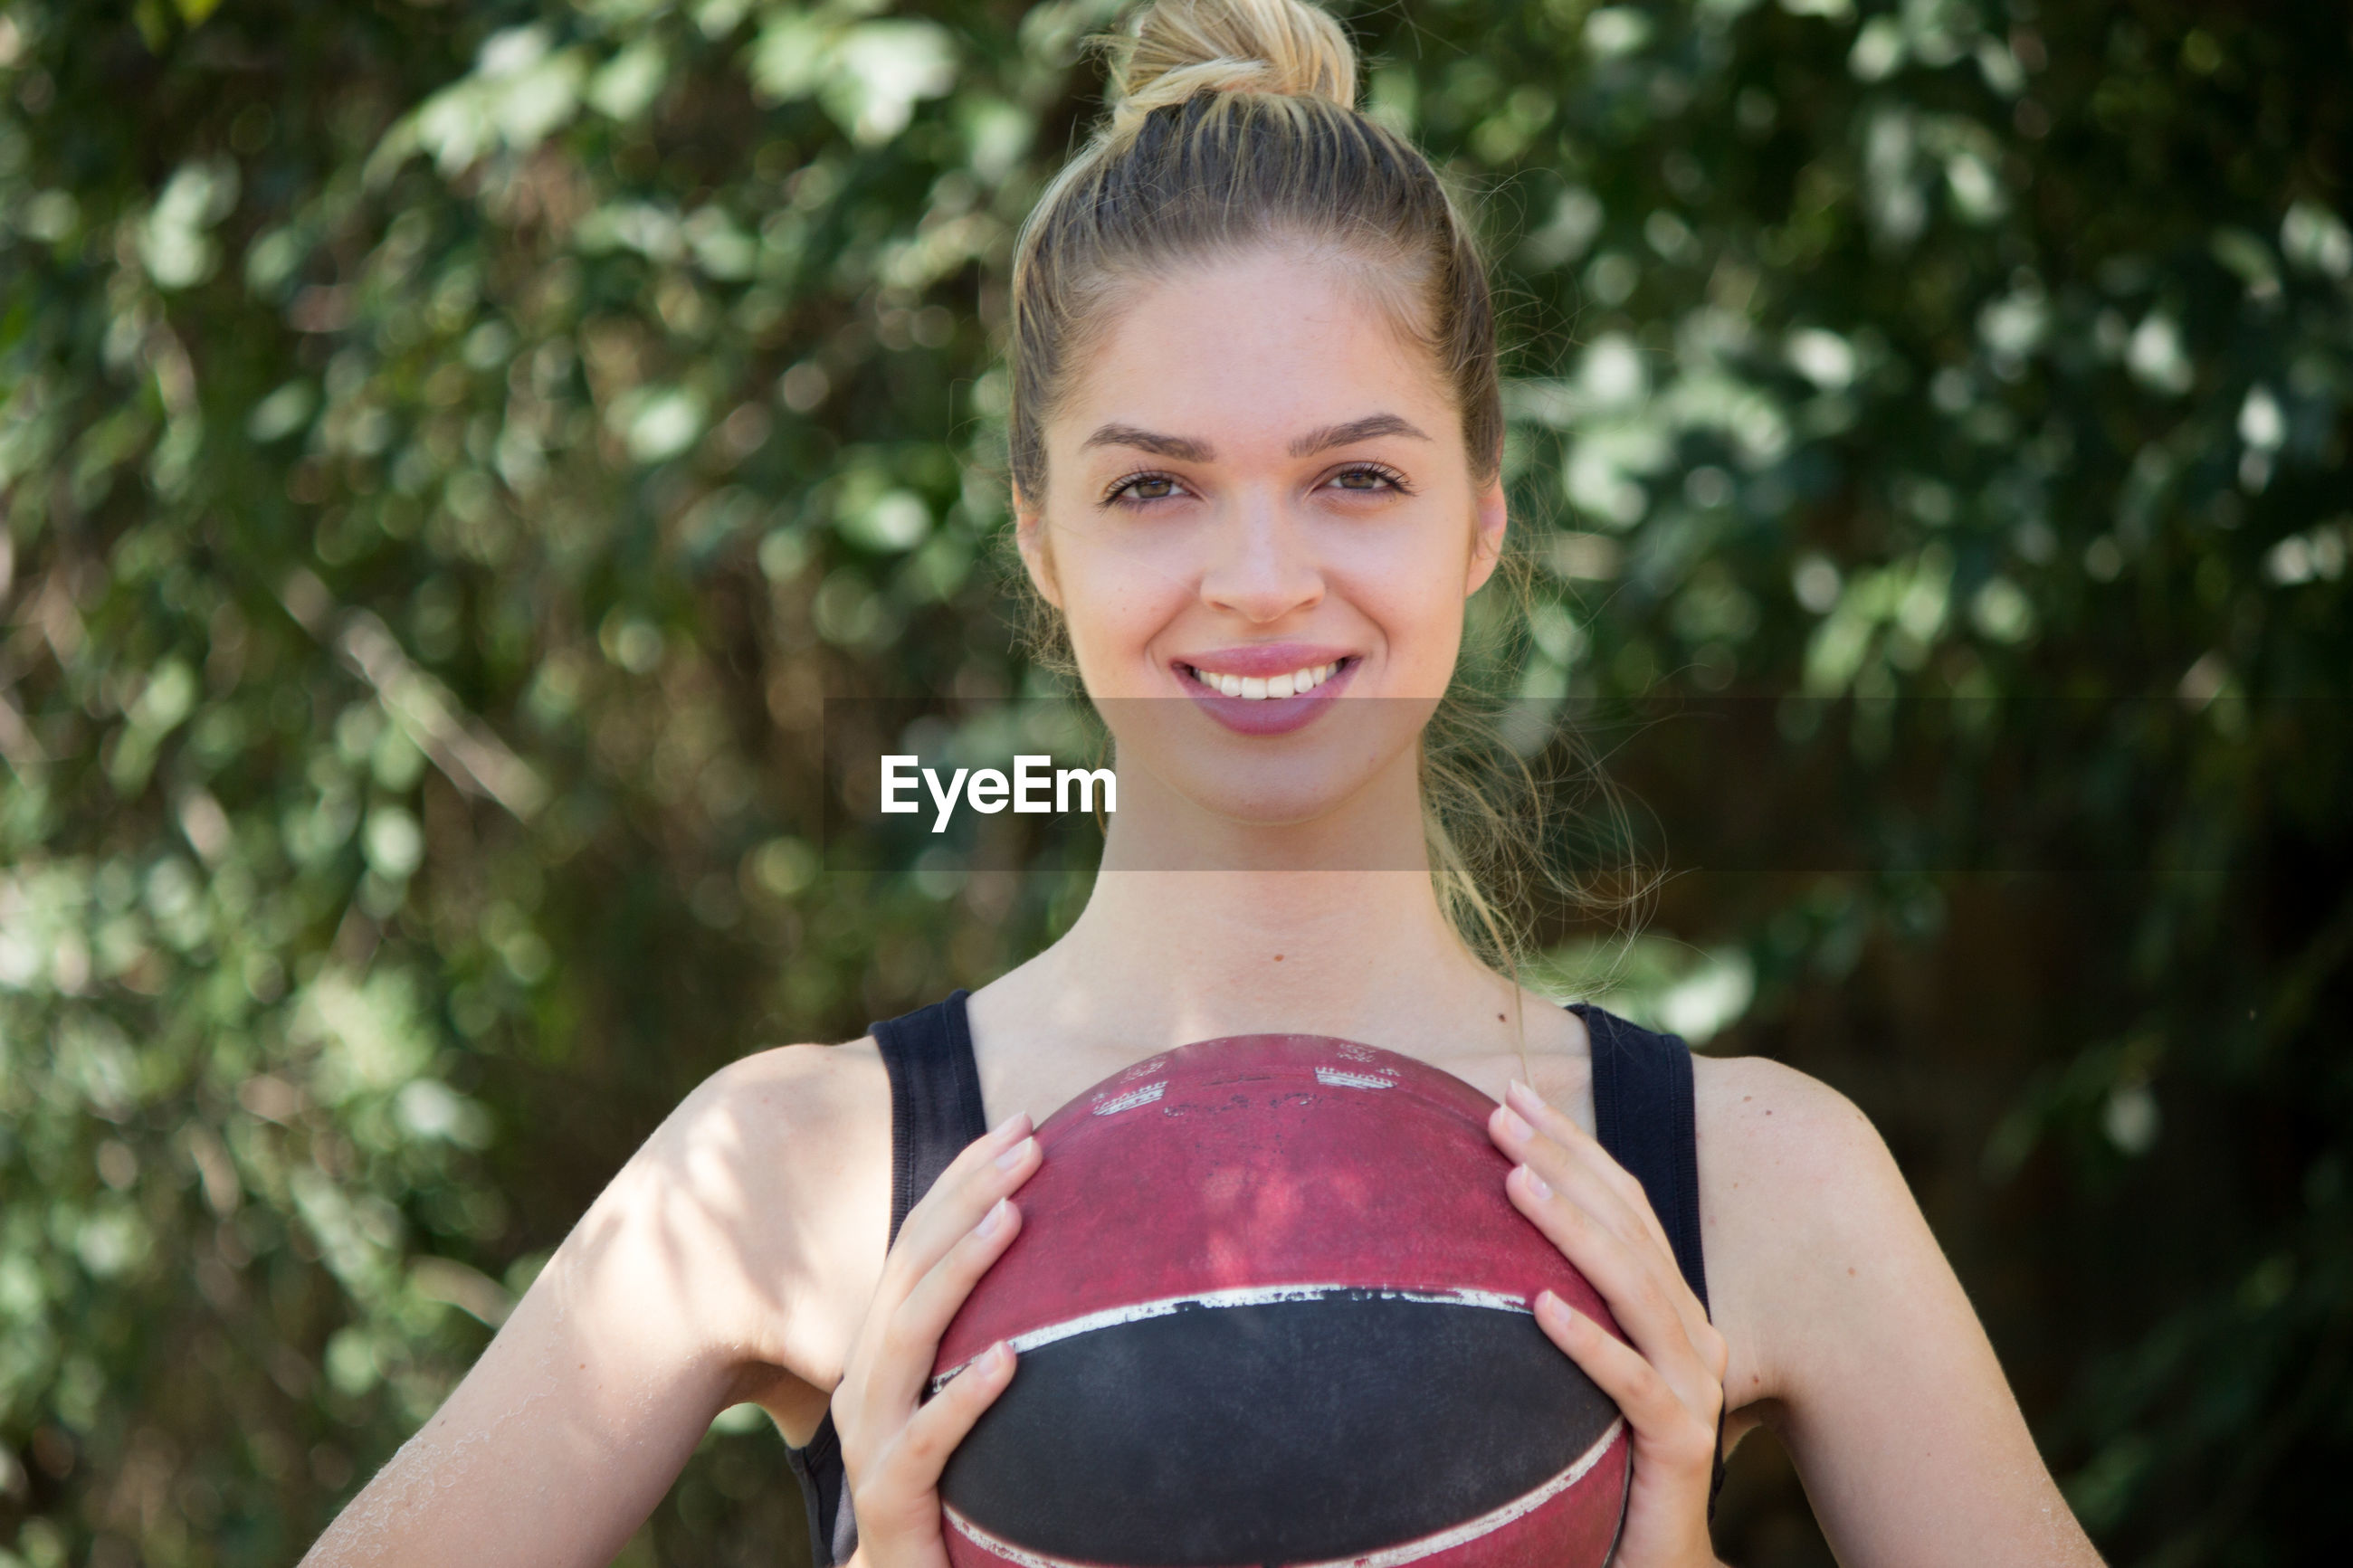 Portrait of young woman holding basketball in park